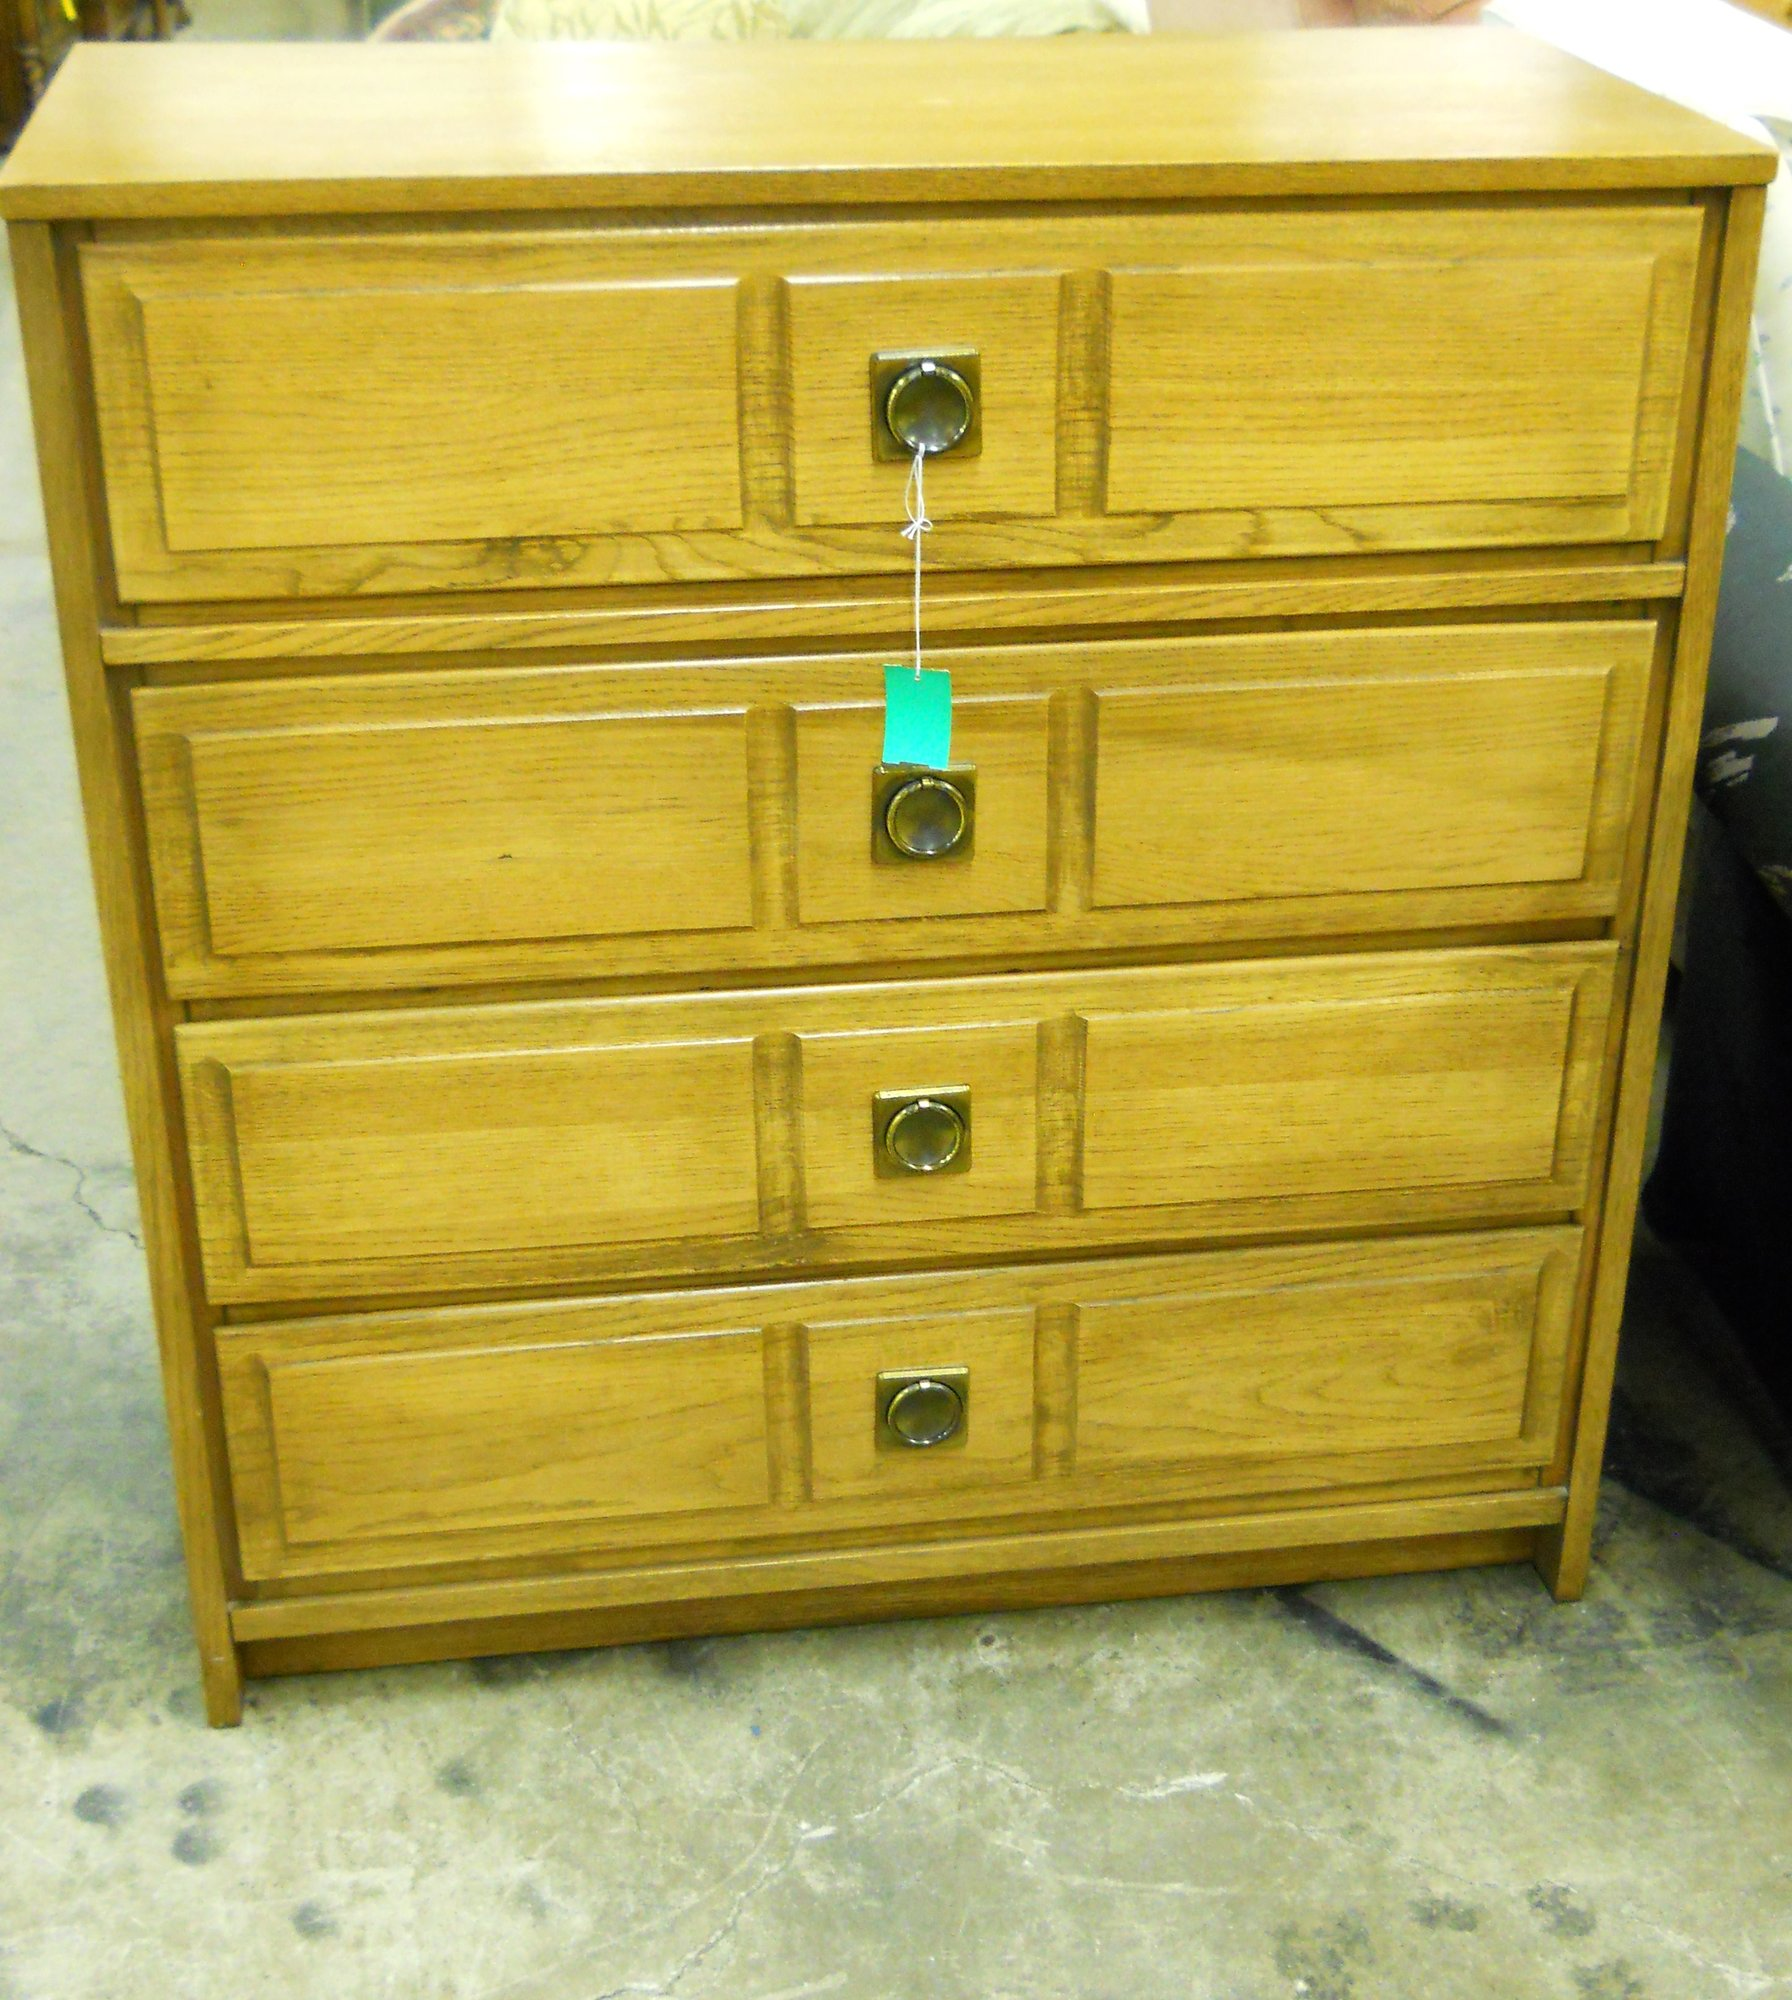 Used Furniture Gallery: 1-12953 Chest